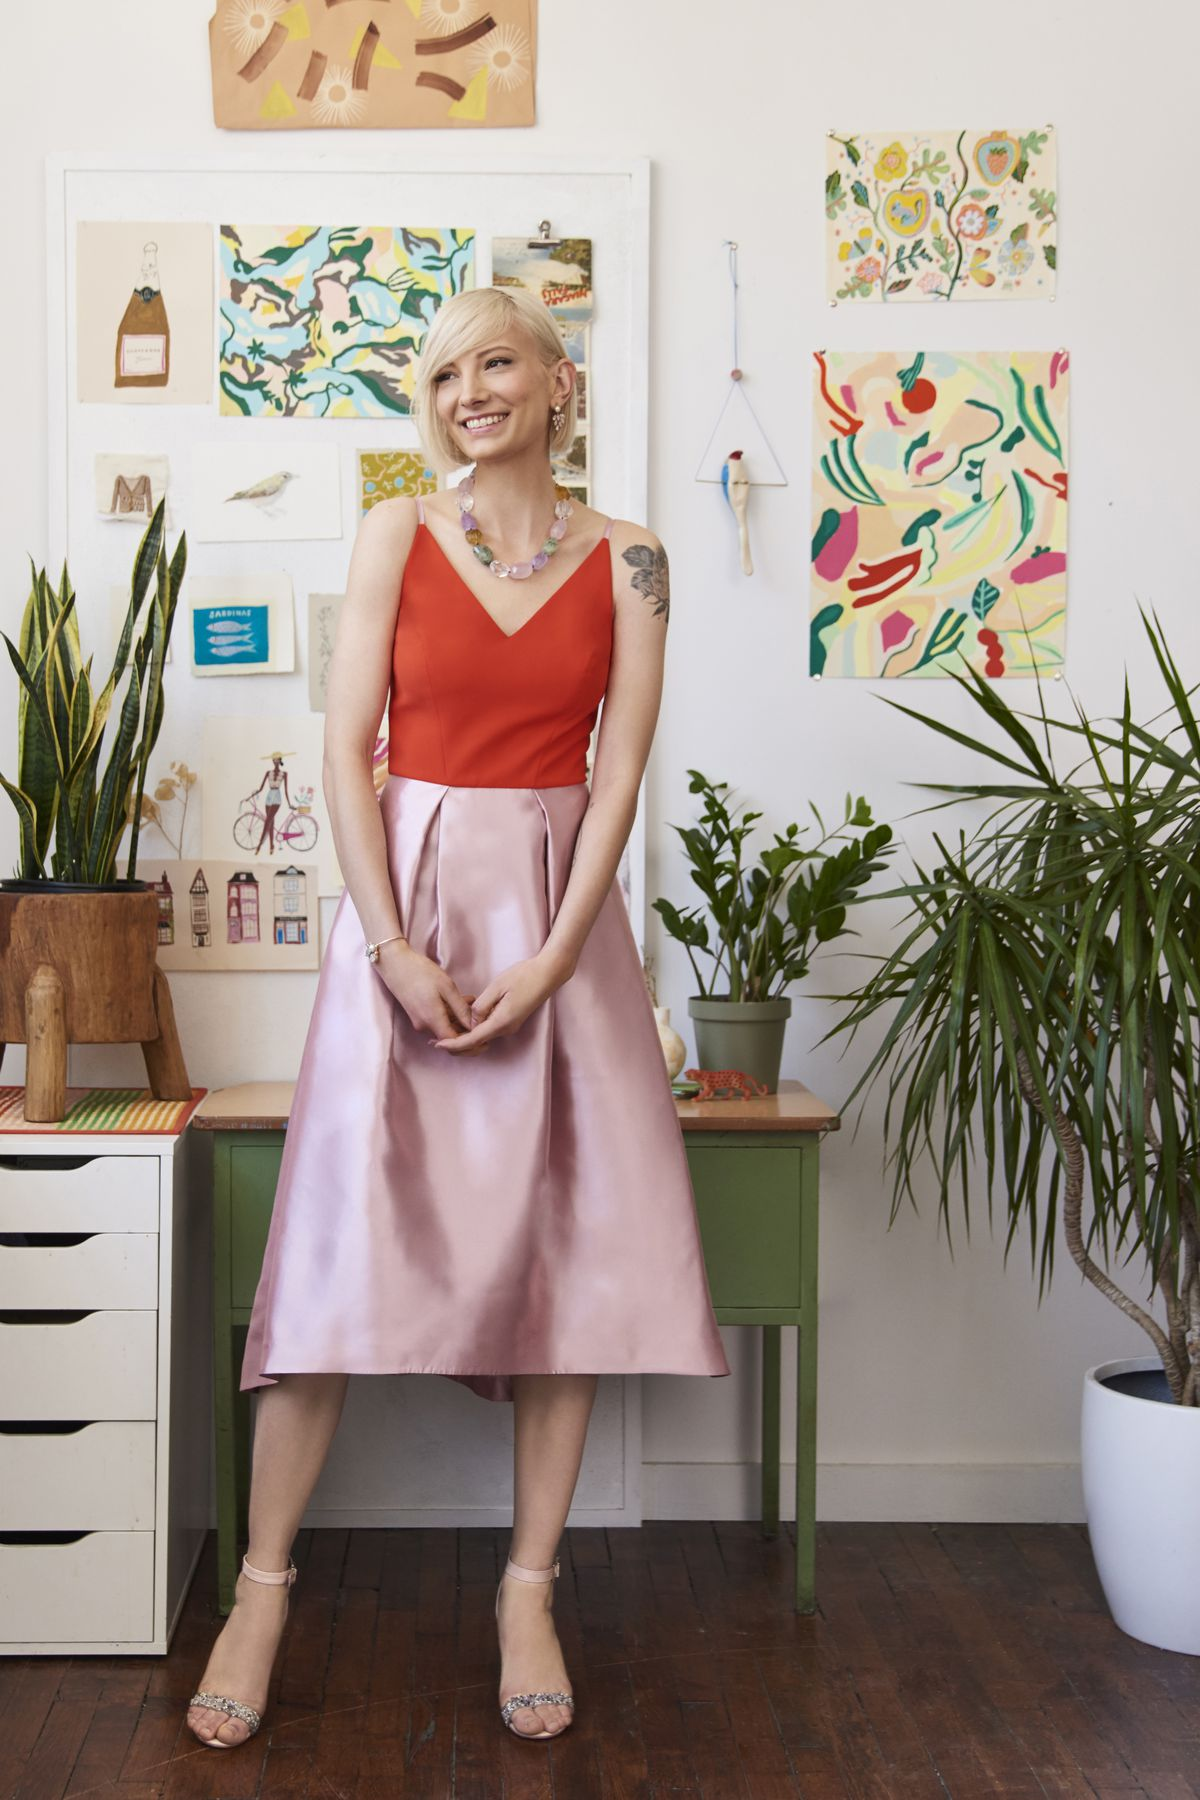 98870d8259 ... with the BHLDN aesthetic for these special occasions. We decided to  launch an edited capsule of dresses for all events